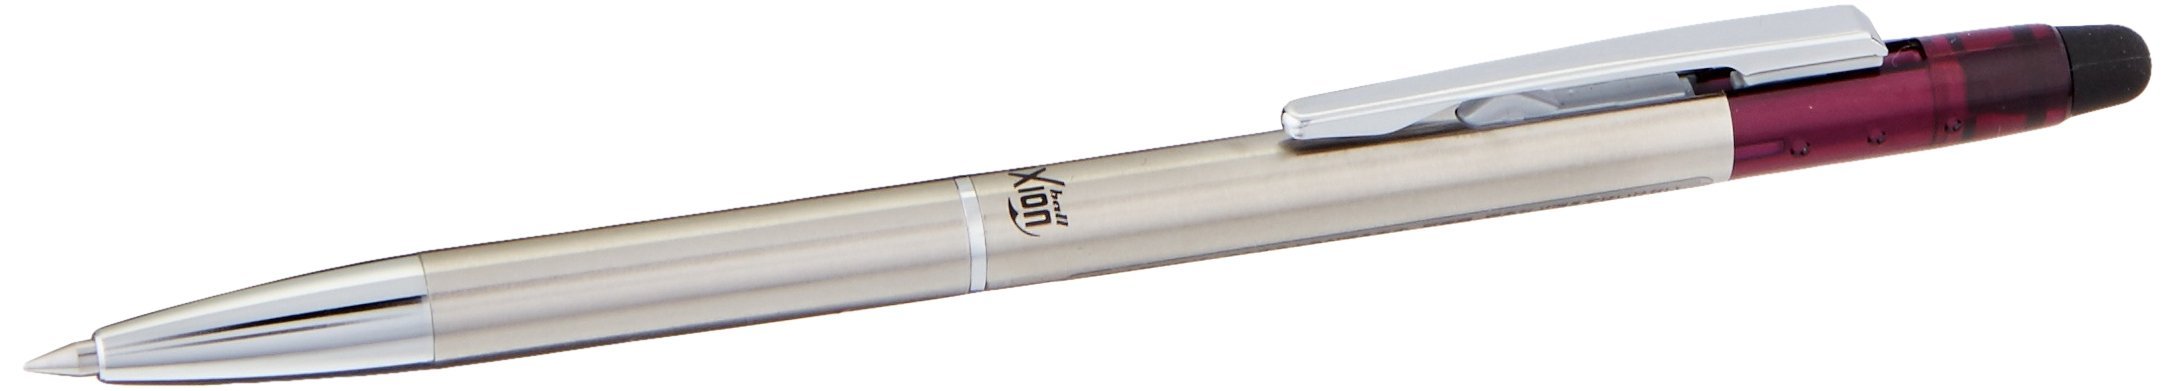 Pilot LFBKS-1SUF-WR Frixion Ink Ballpoint Pen Frixi [14H3FXDY]